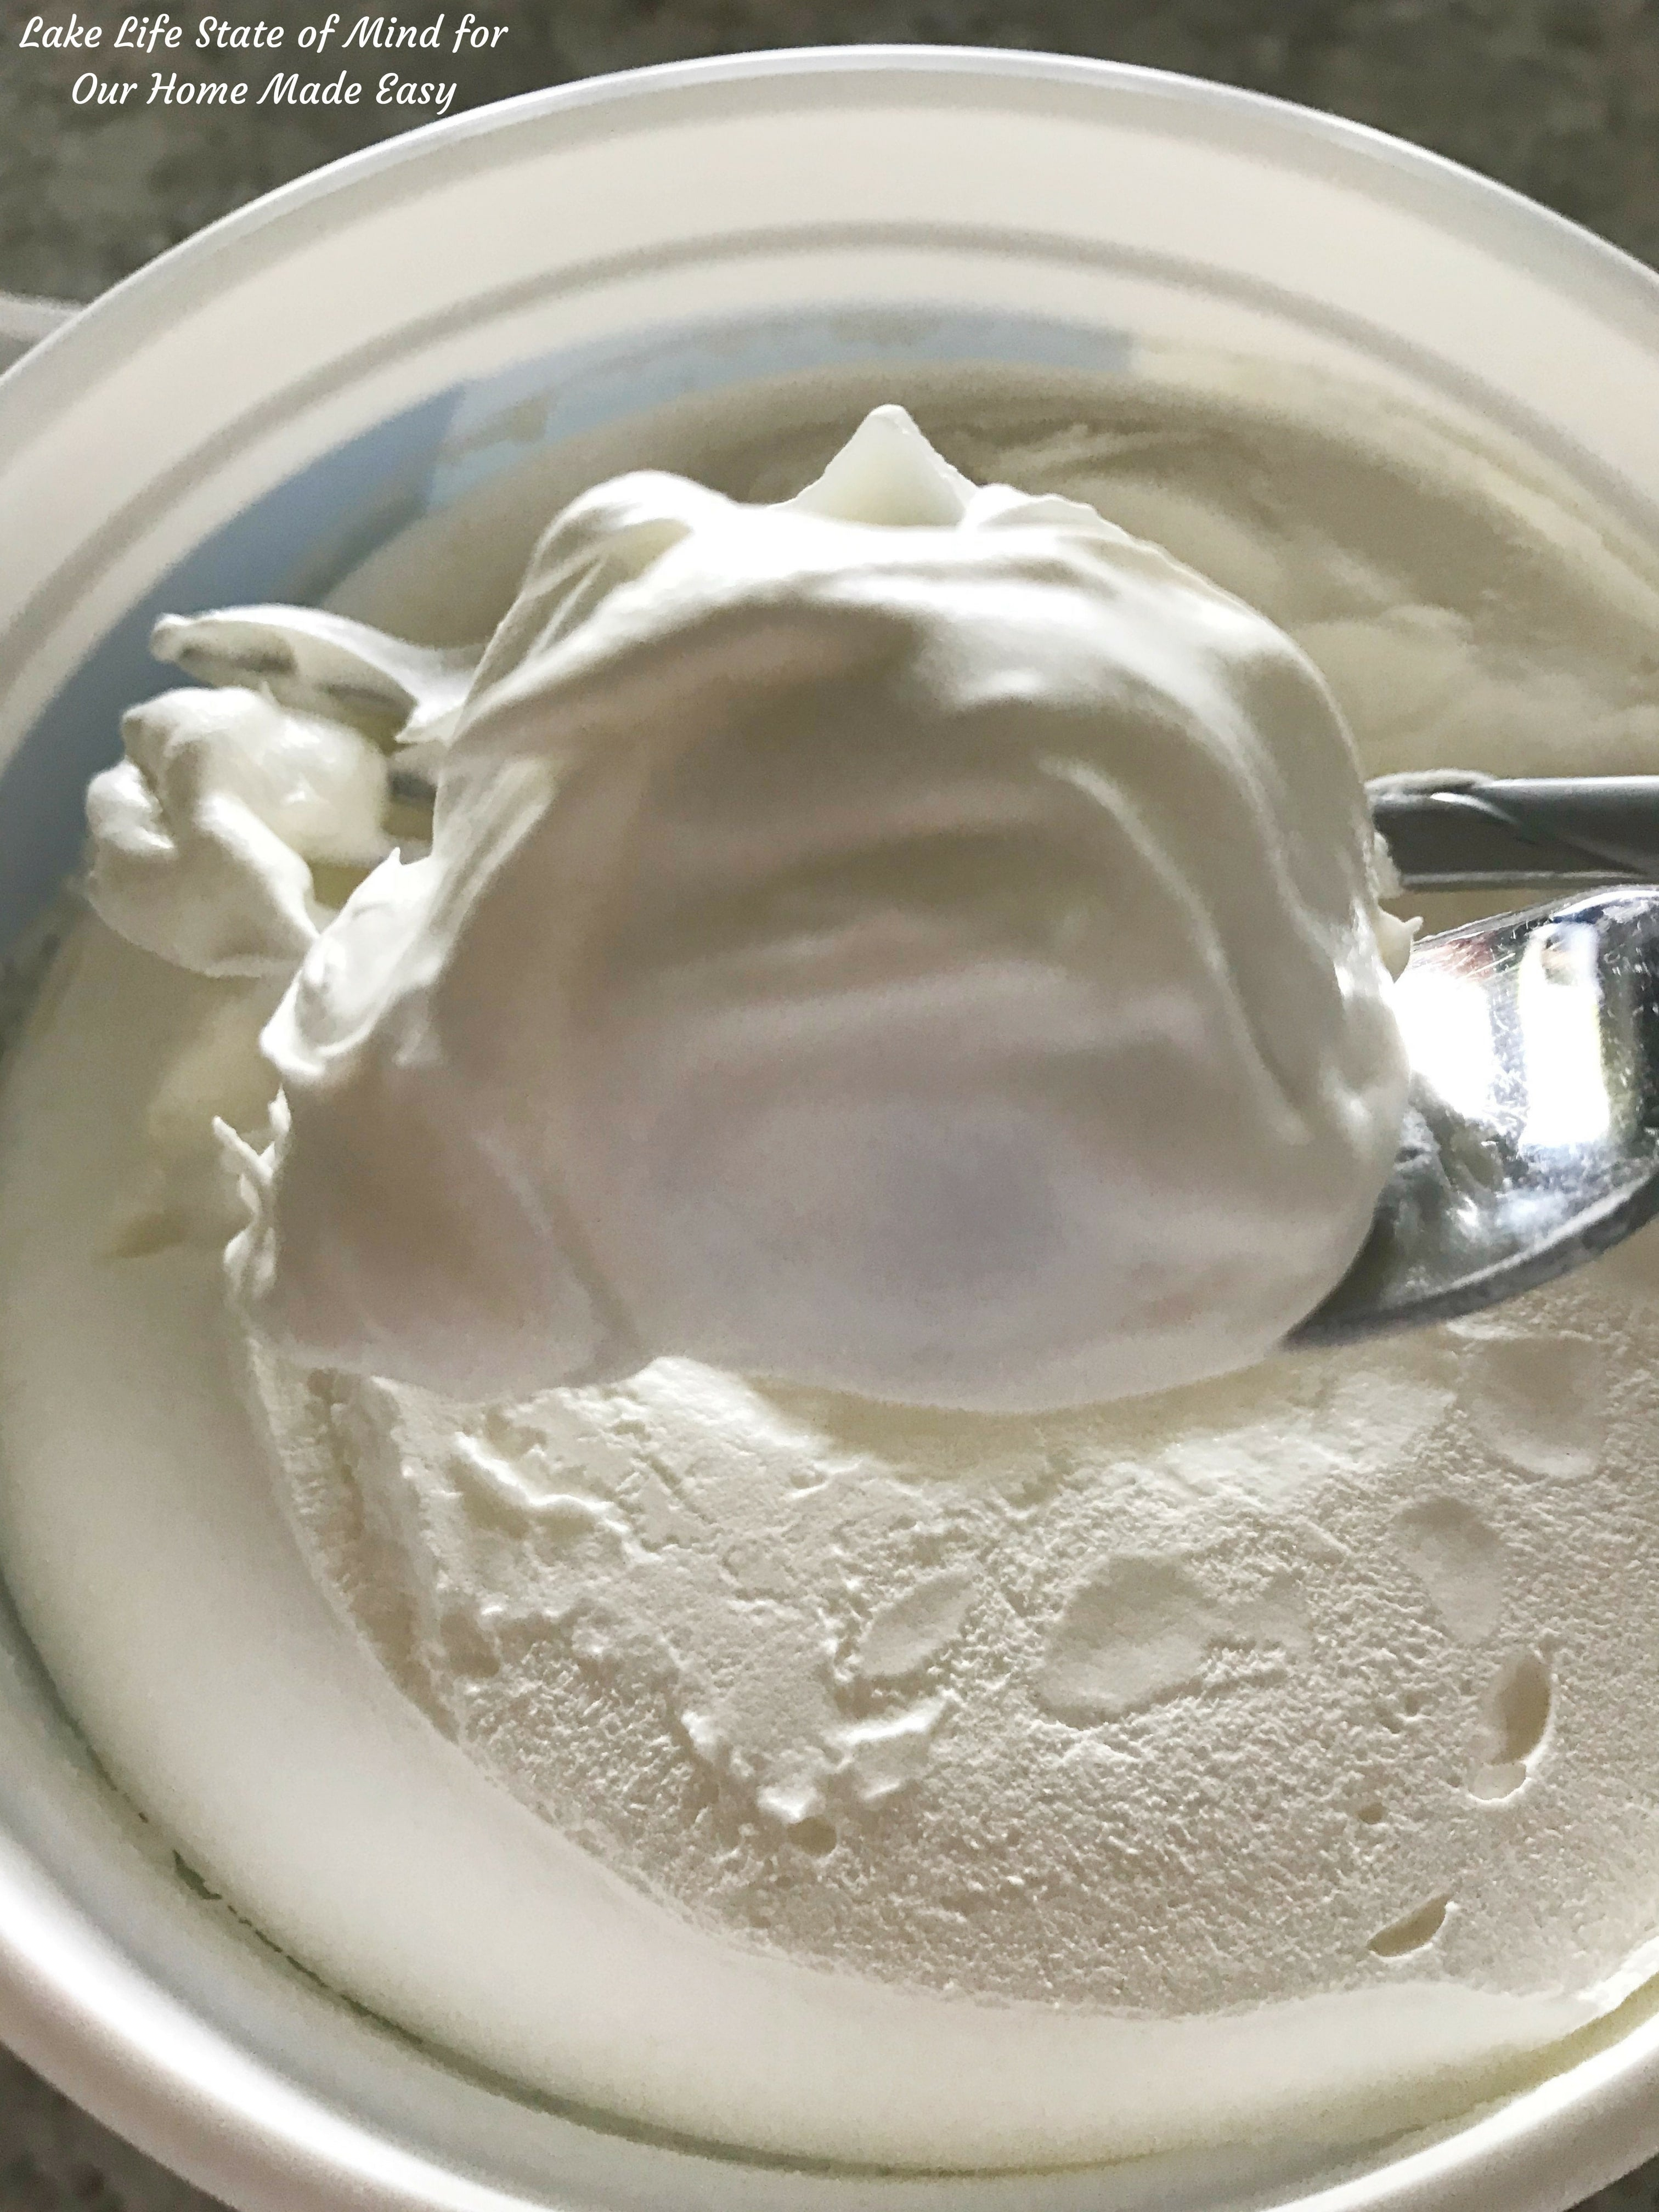 Sweet and fluffy whipped cream is light and refreshing with the chocolate syrup